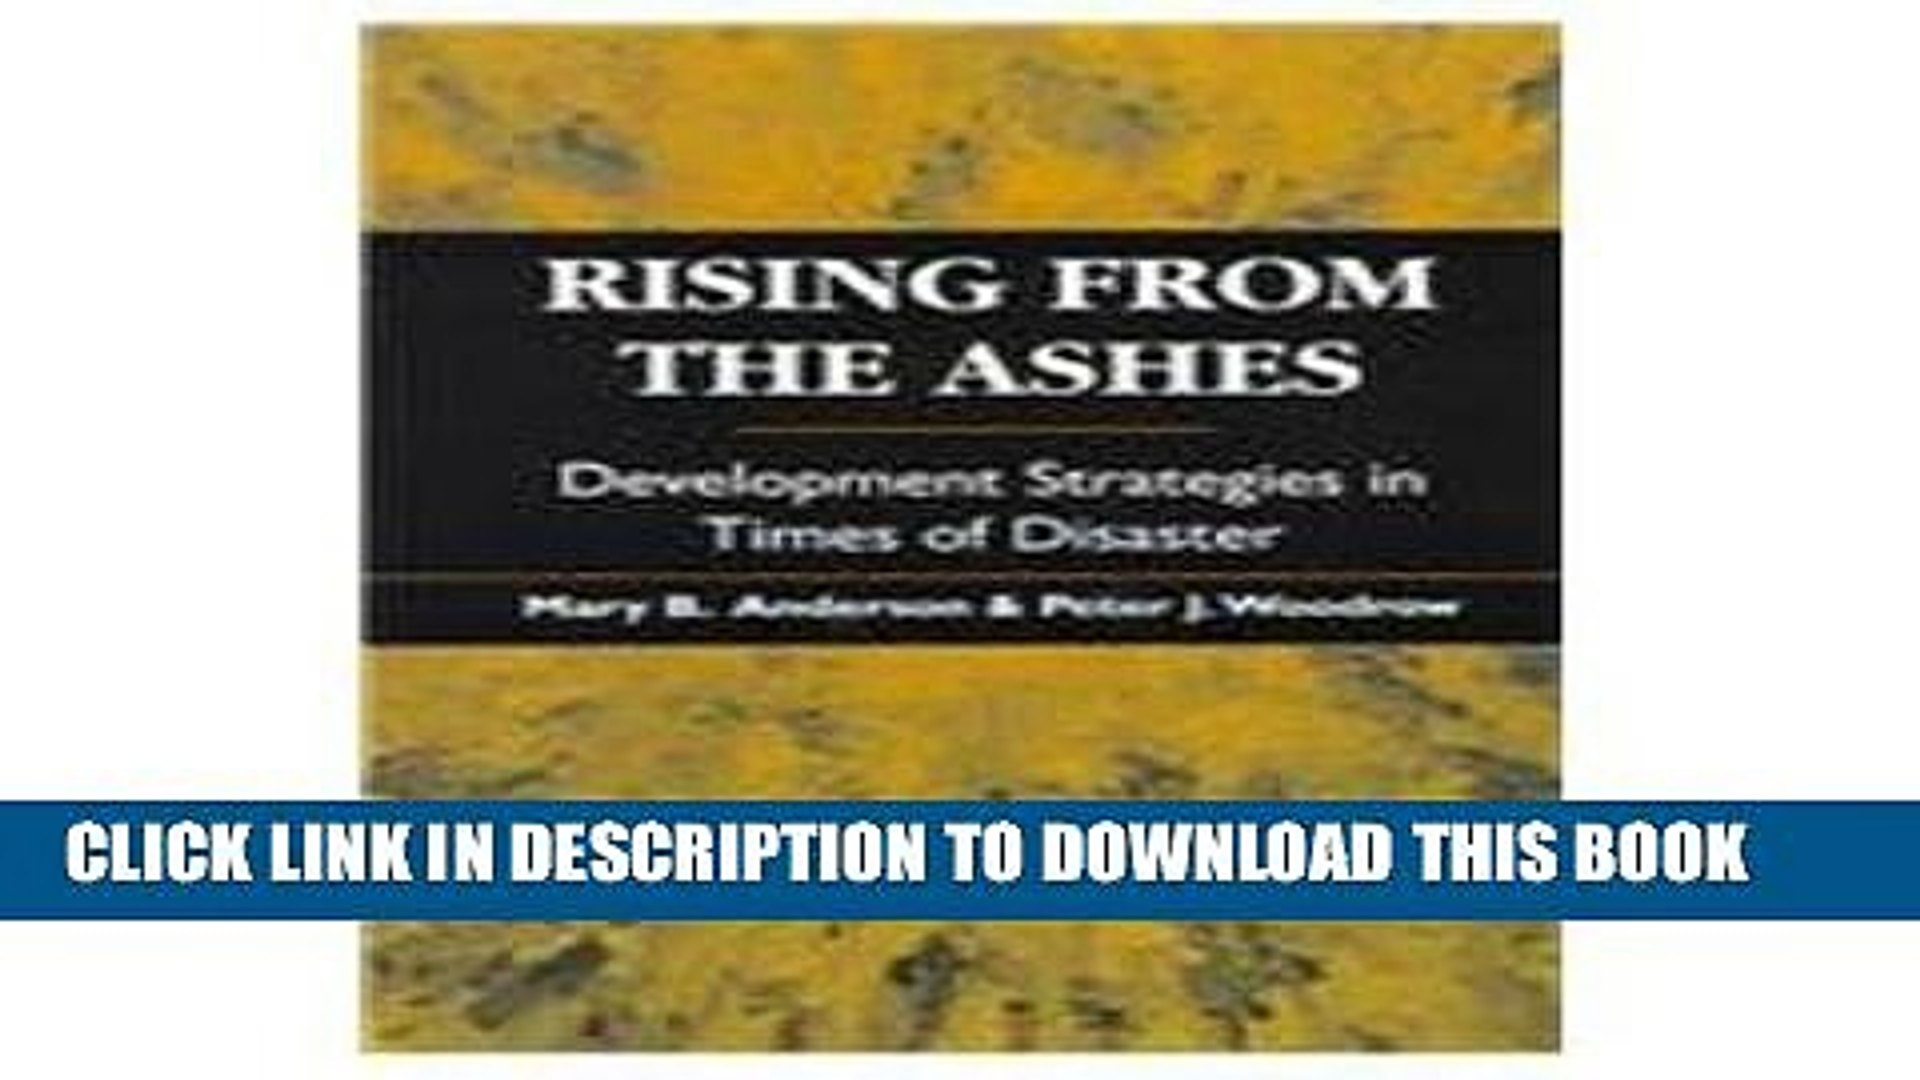 [PDF] Rising from the Ashes: Development Strategies in Times of Disaster Full Online